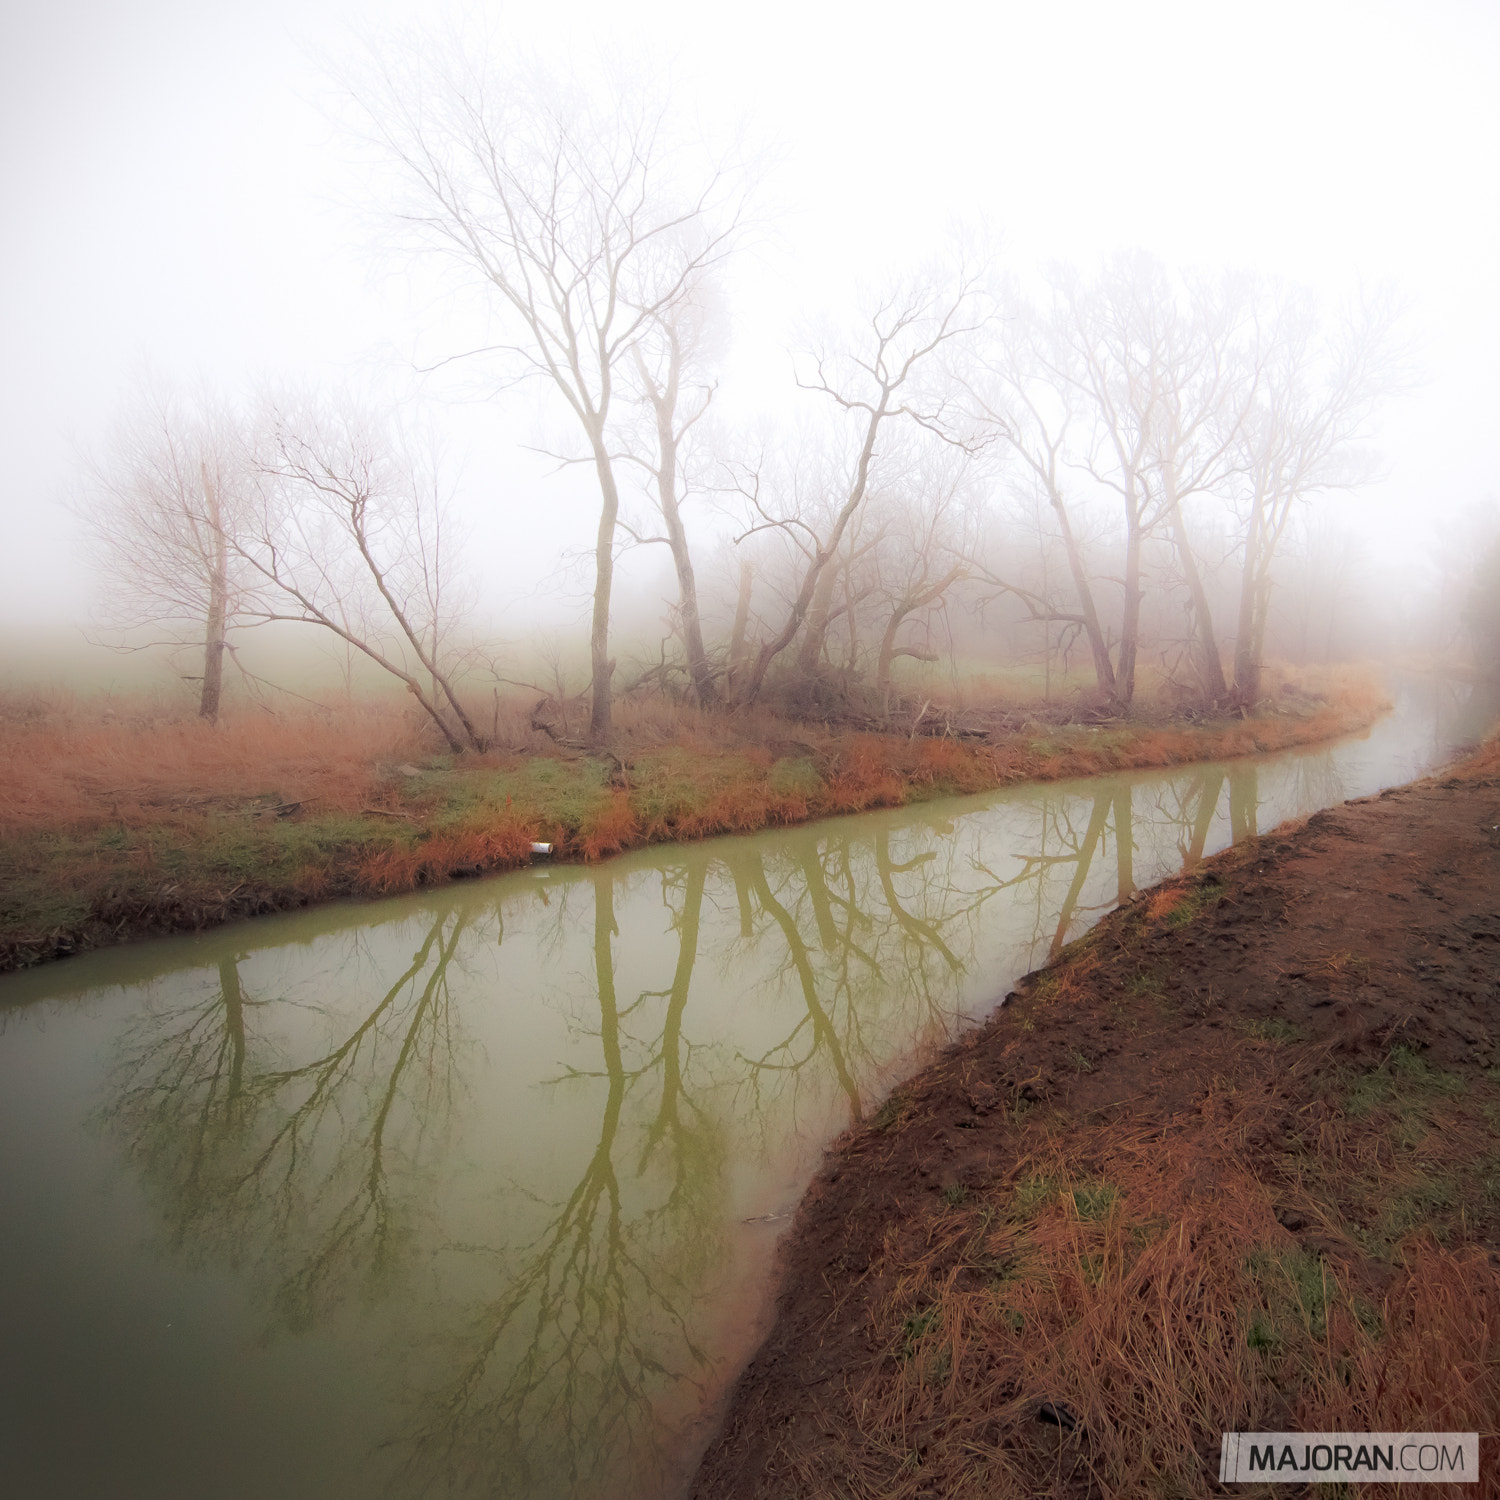 Photograph A Foggy Reflection by Ray Majoran on 500px